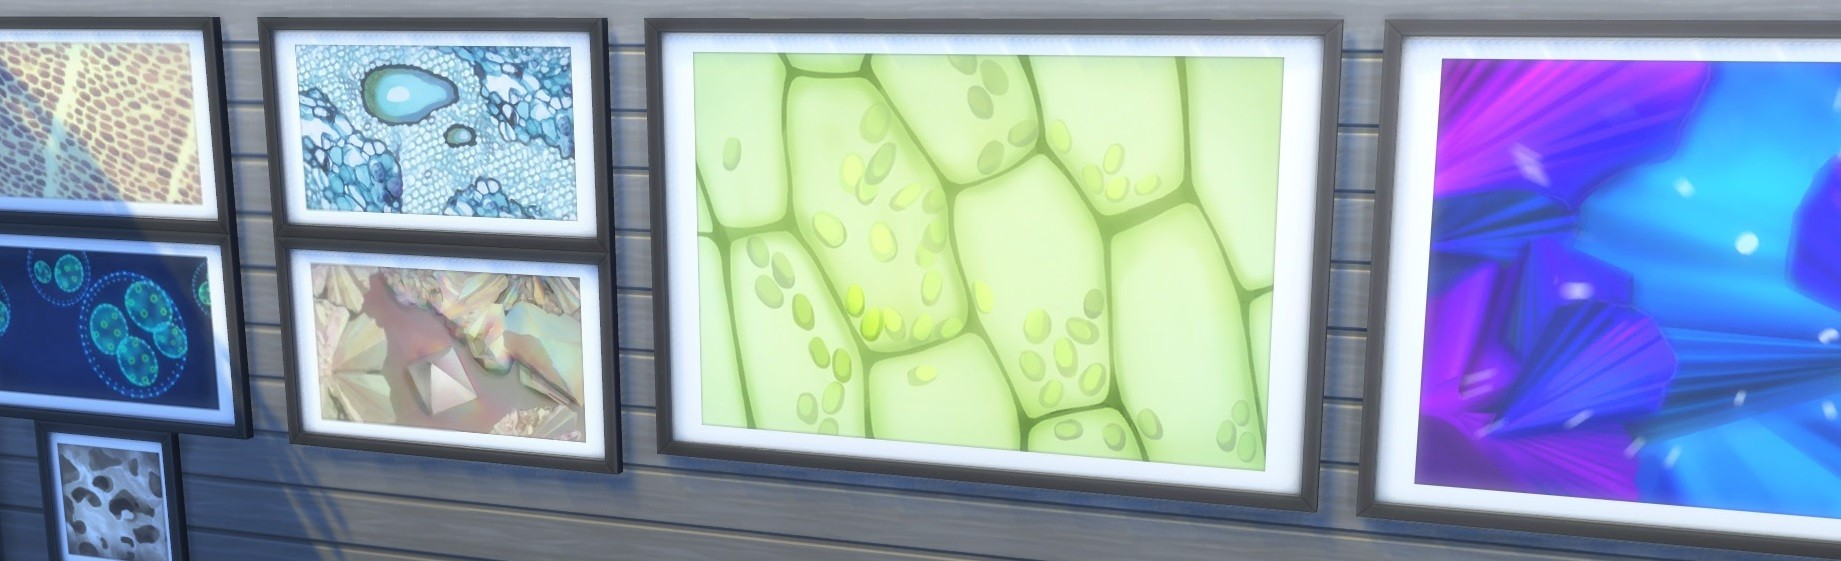 Les Sims 4 - images du microscope